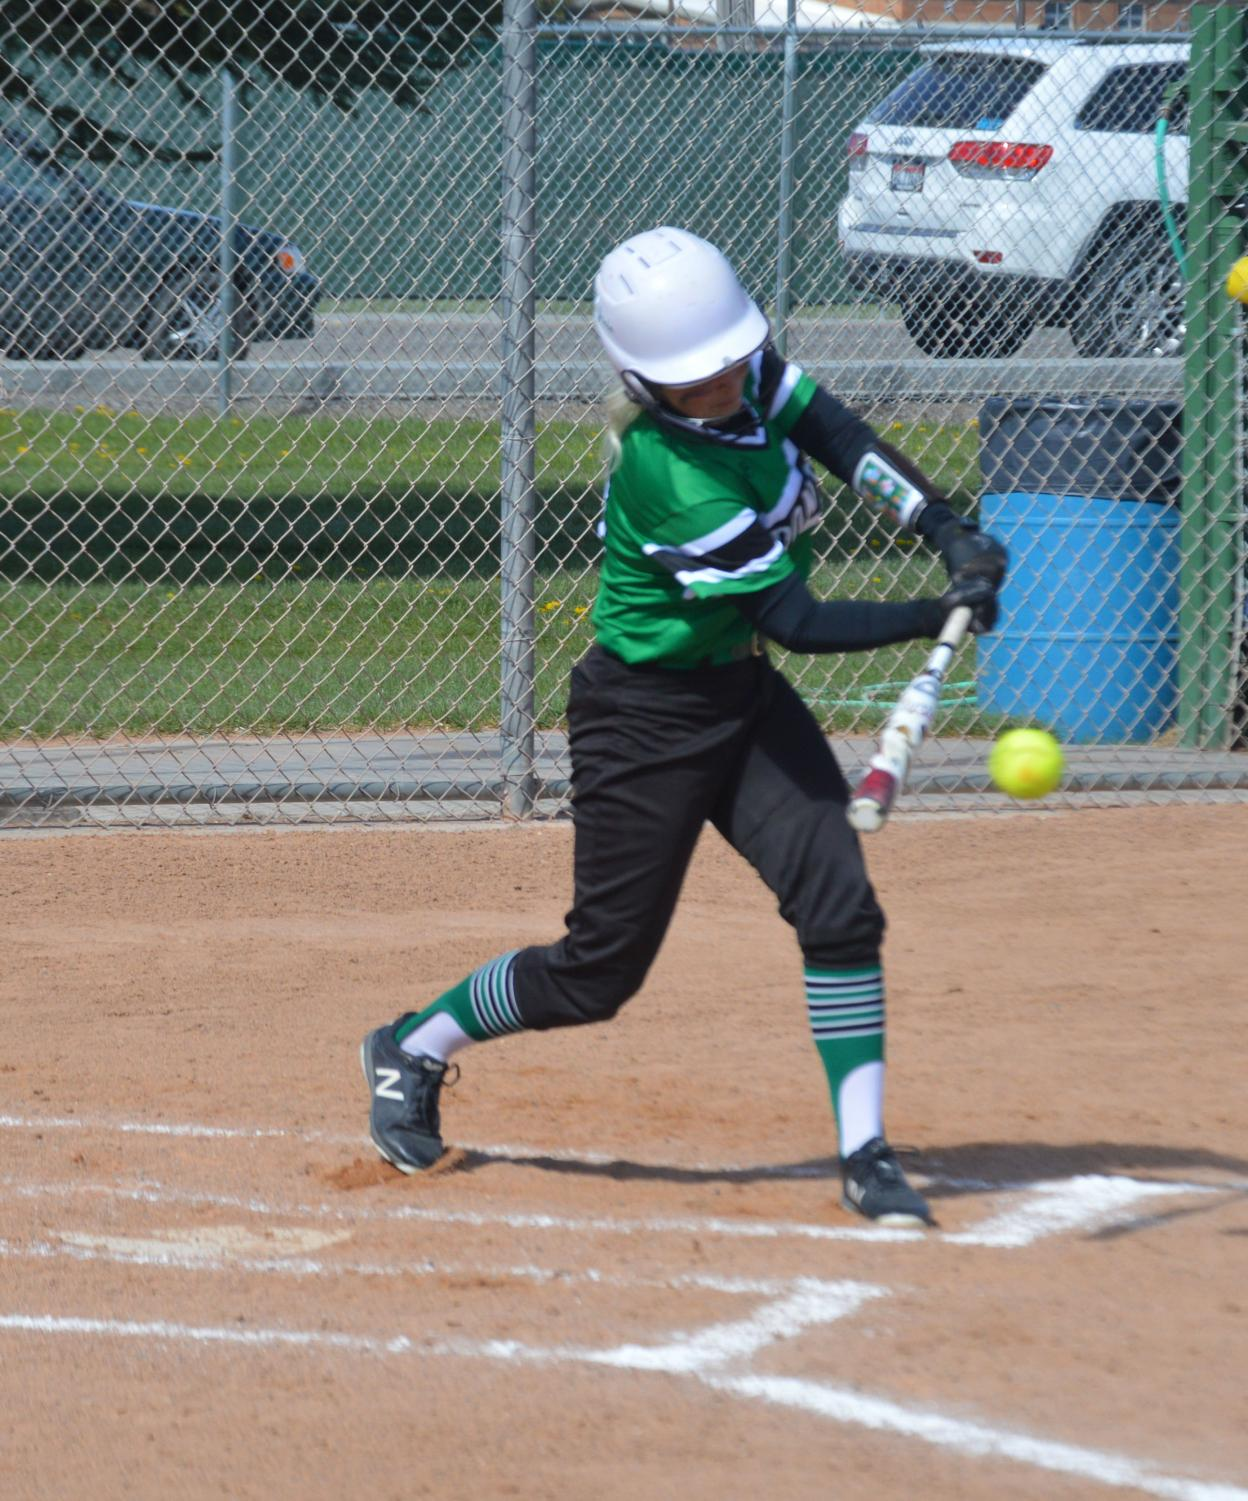 SLASH.+Josie+Anderson%2812%29+fake+bunts+and+hits+a+ground+ball